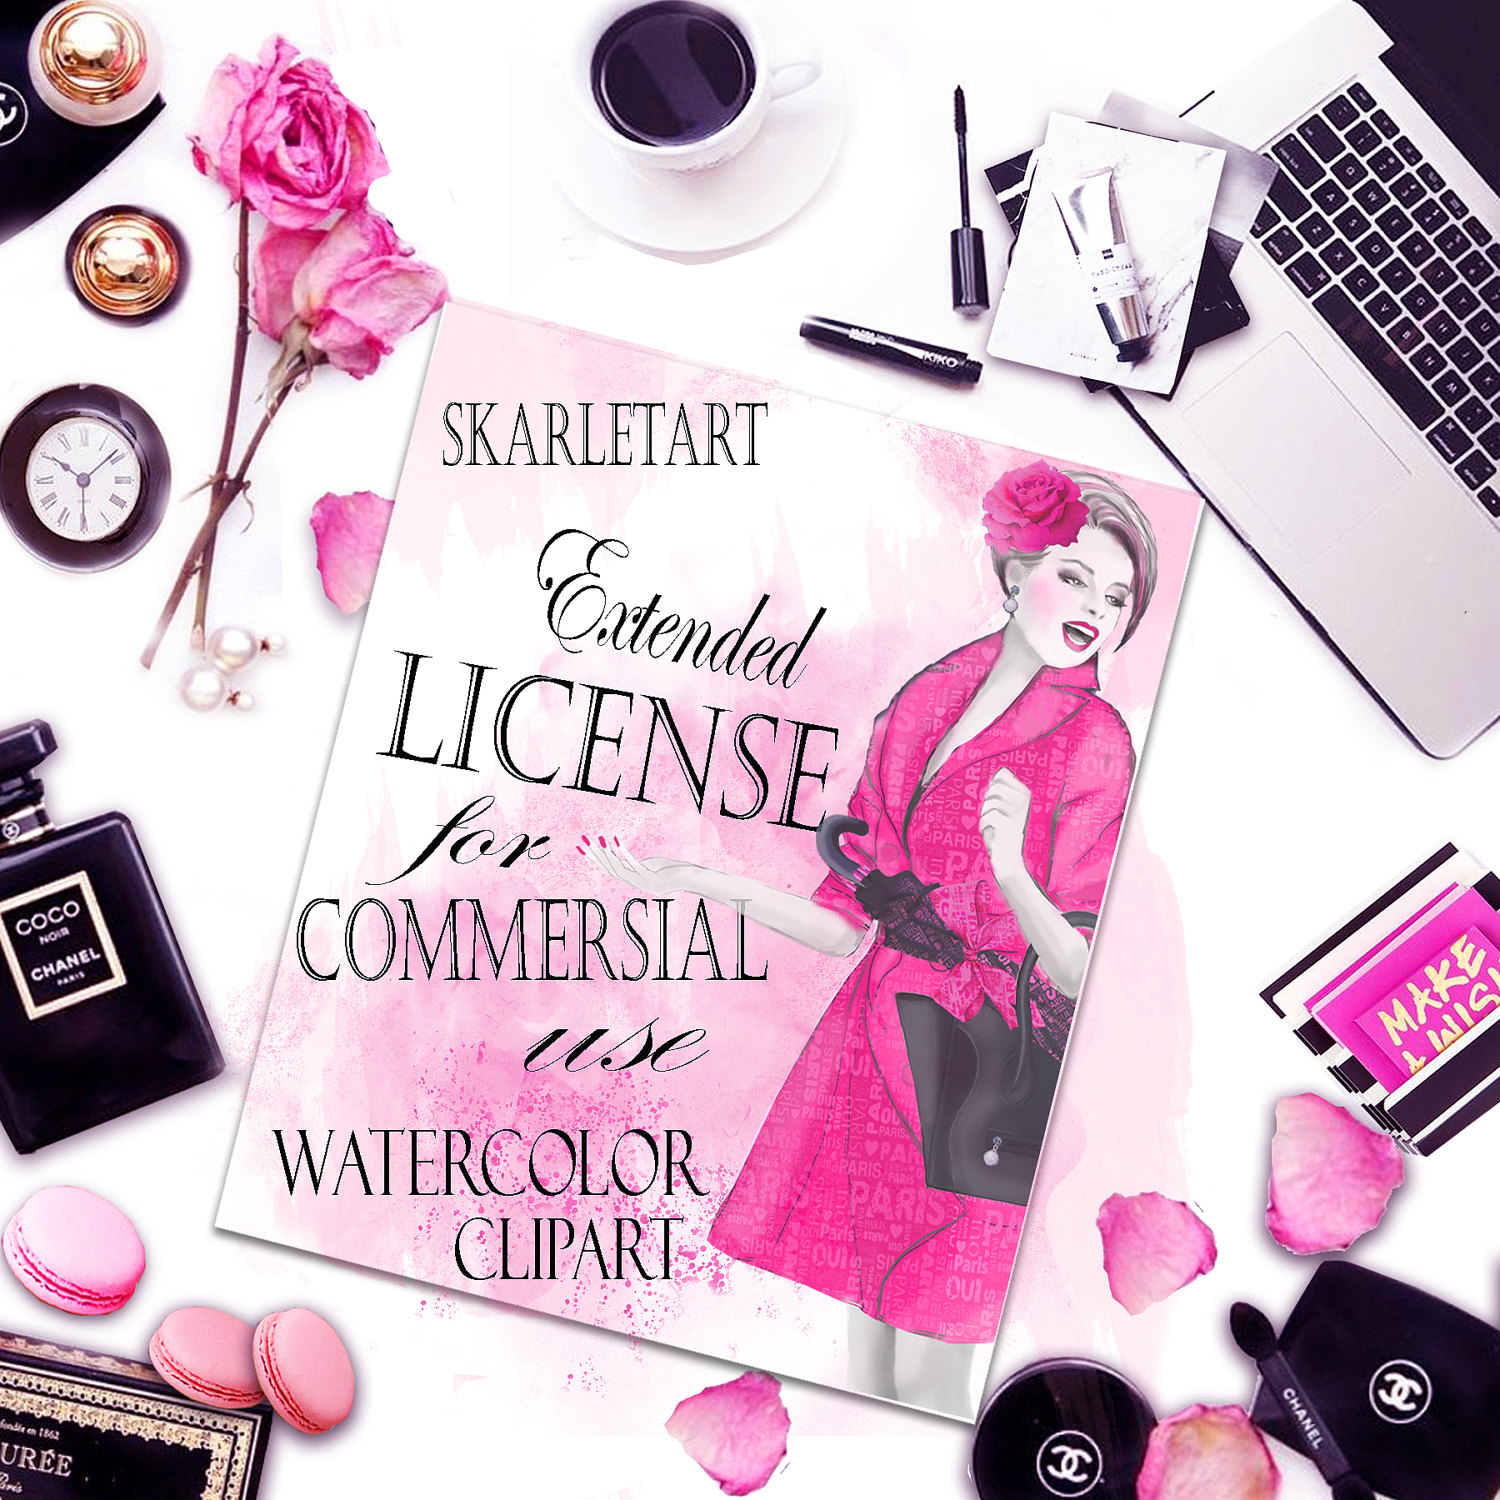 Extended license for Handpainted Watercolor Clipart.